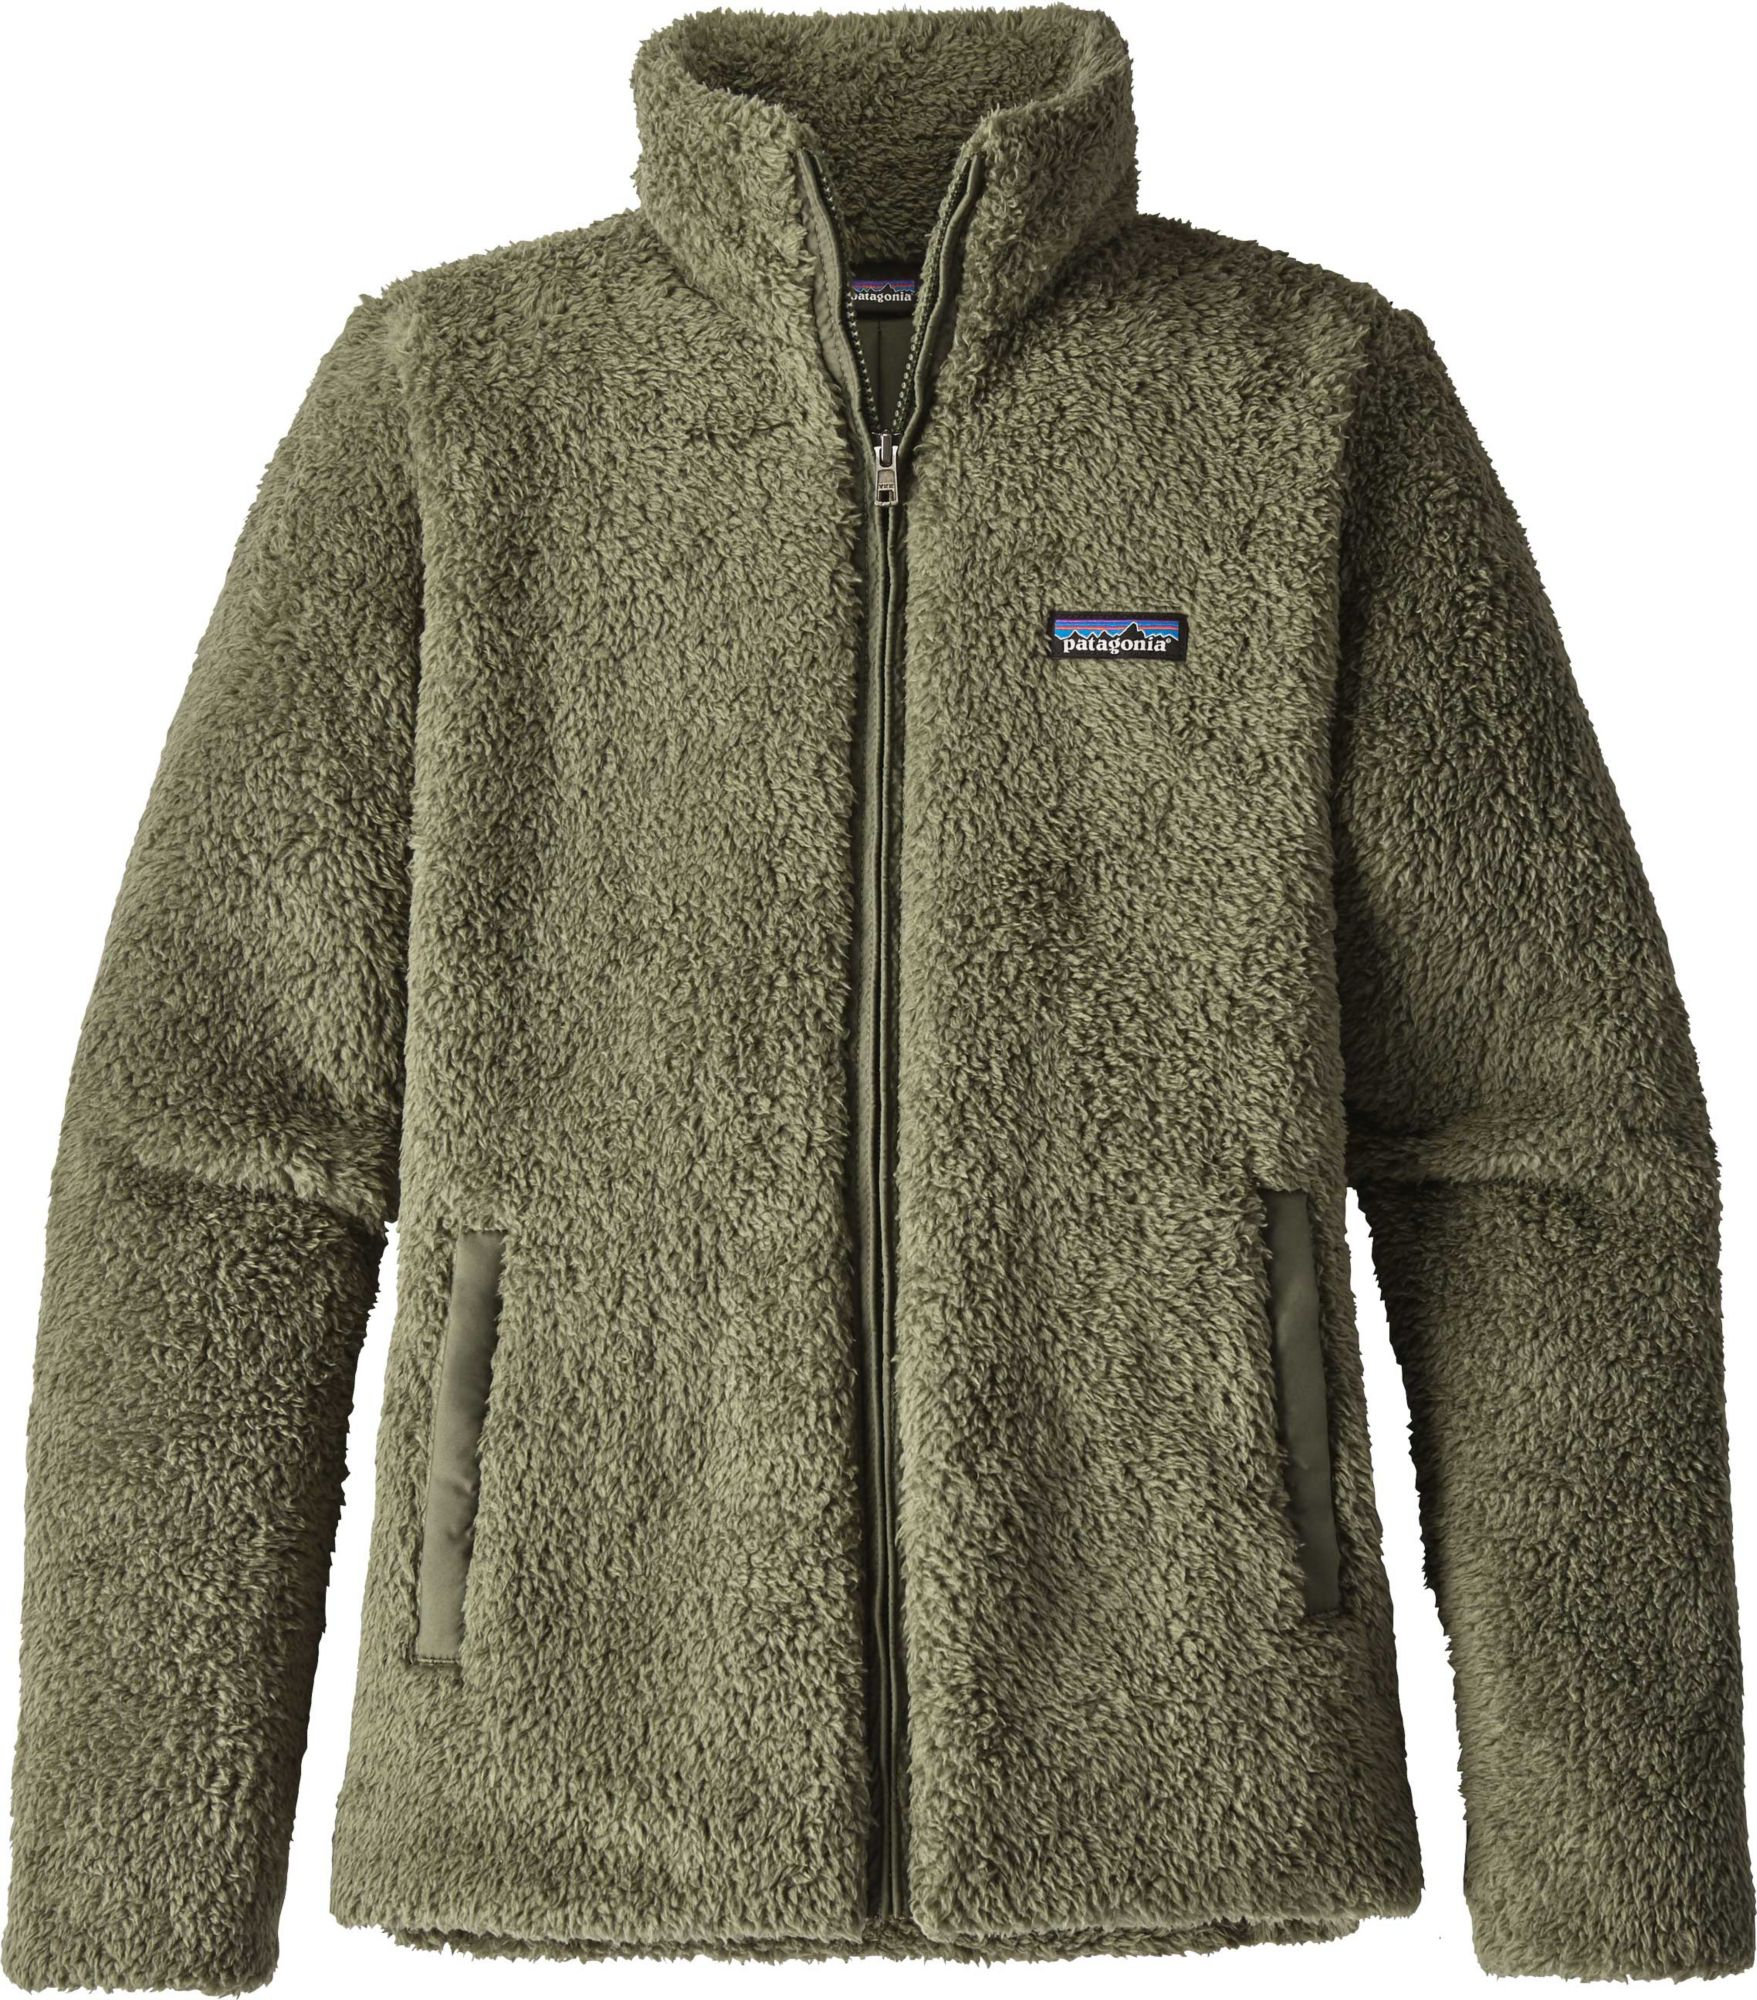 Patagonia Pullover Knit